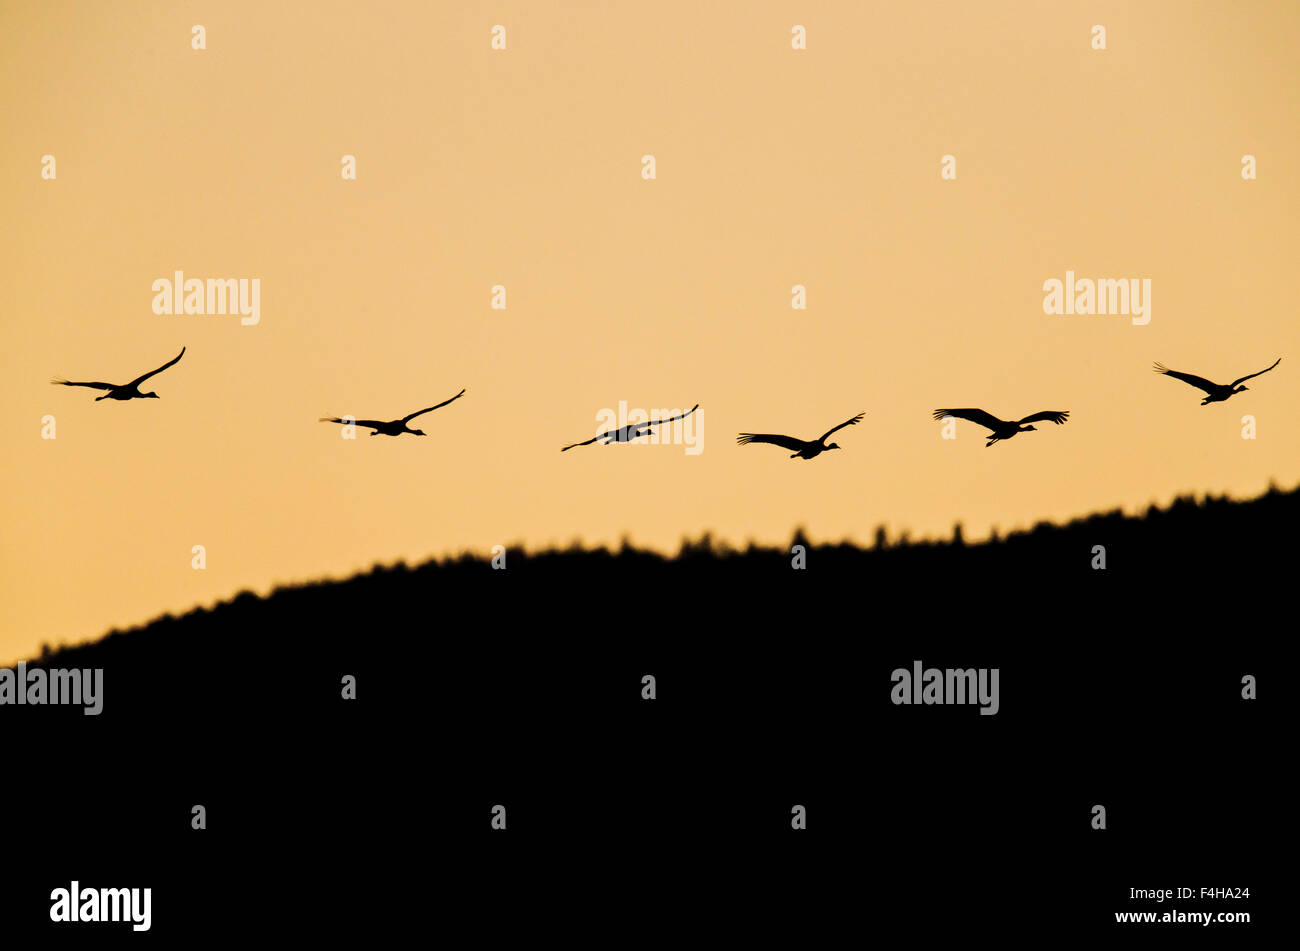 Sandhill gru in volo a sunrise, Monte Vista National Wildlife Refuge, Colorado, STATI UNITI D'AMERICA Immagini Stock